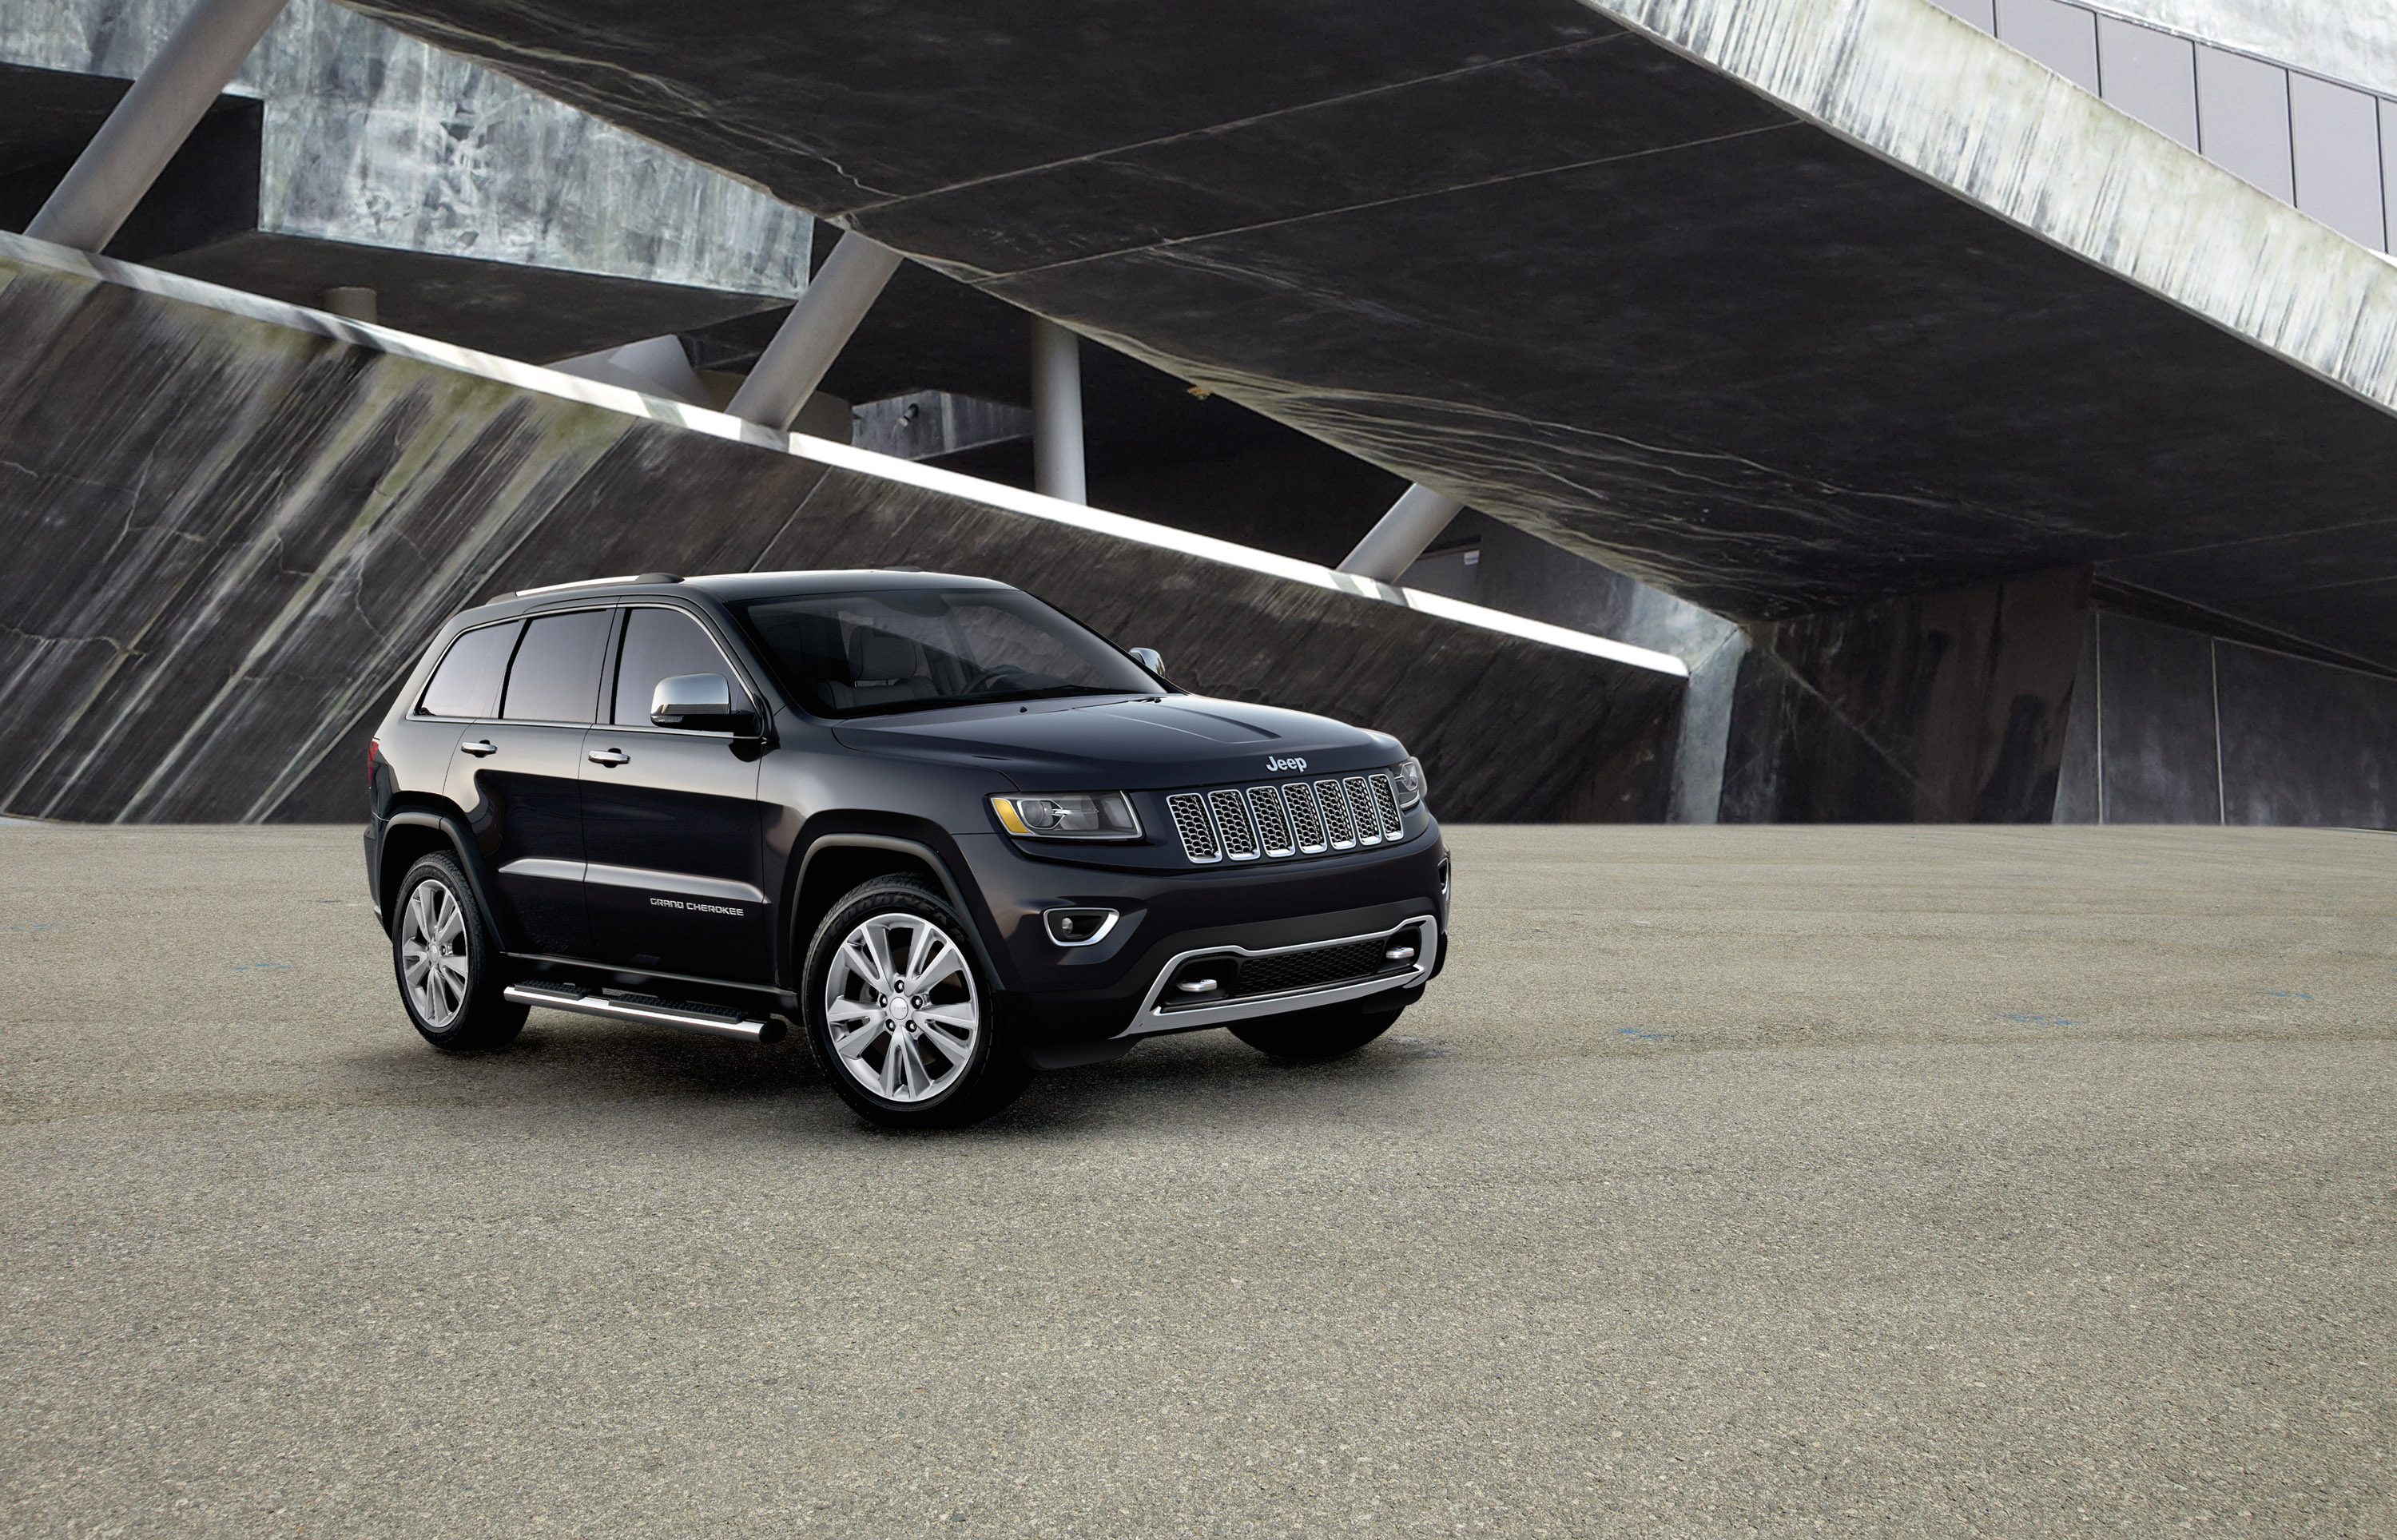 2014 jeep grand cherokee accessories. Cars Review. Best American Auto & Cars Review